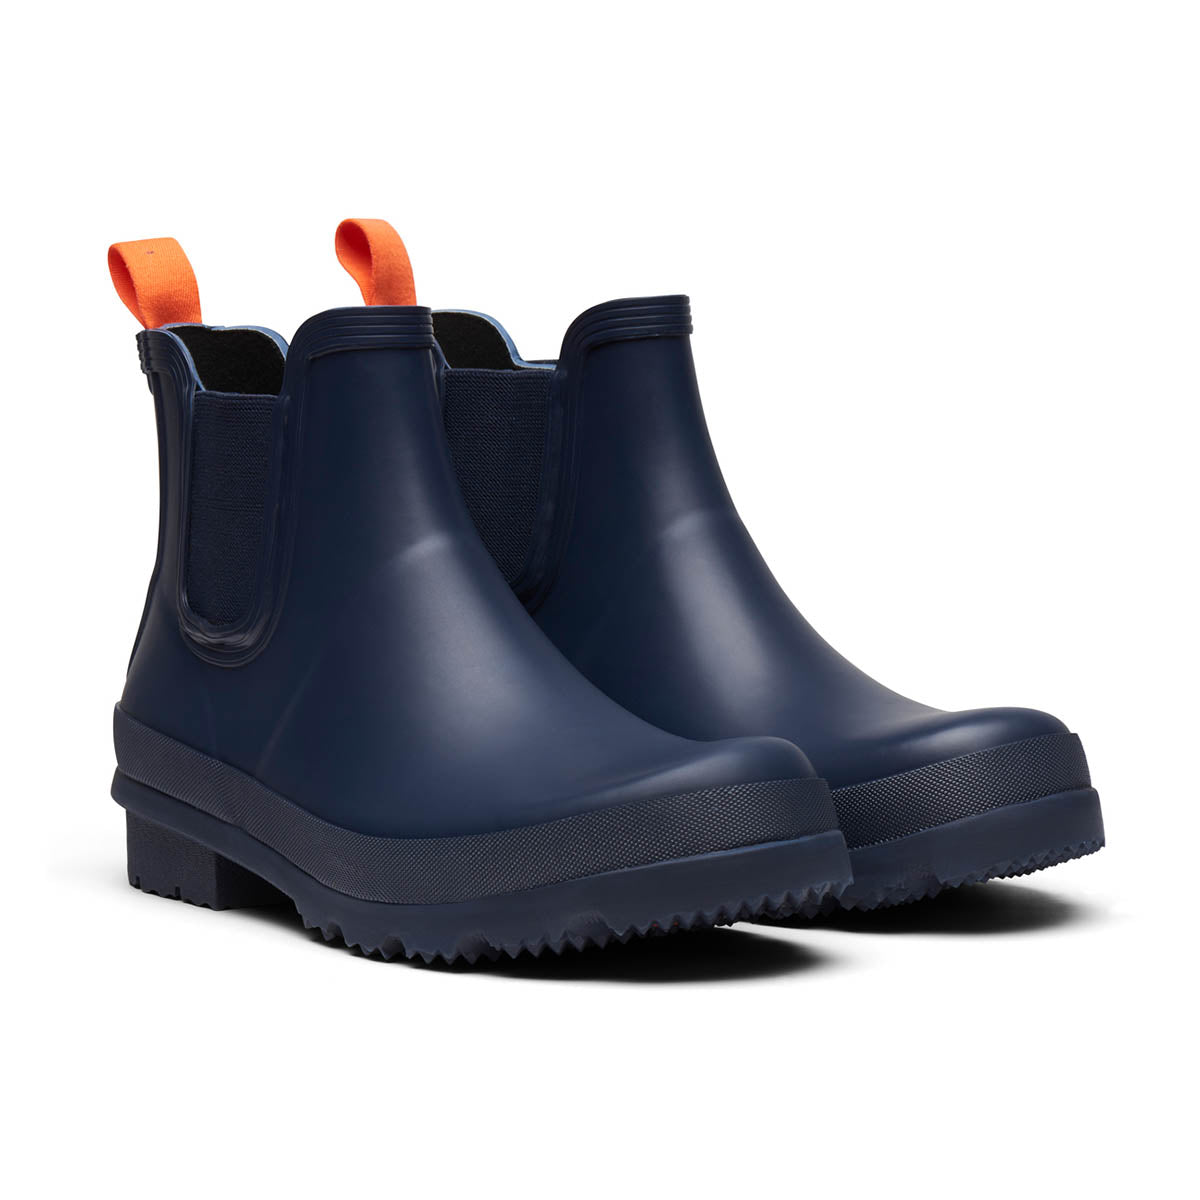 Charlie Rain Boot - background::white,variant::Navy